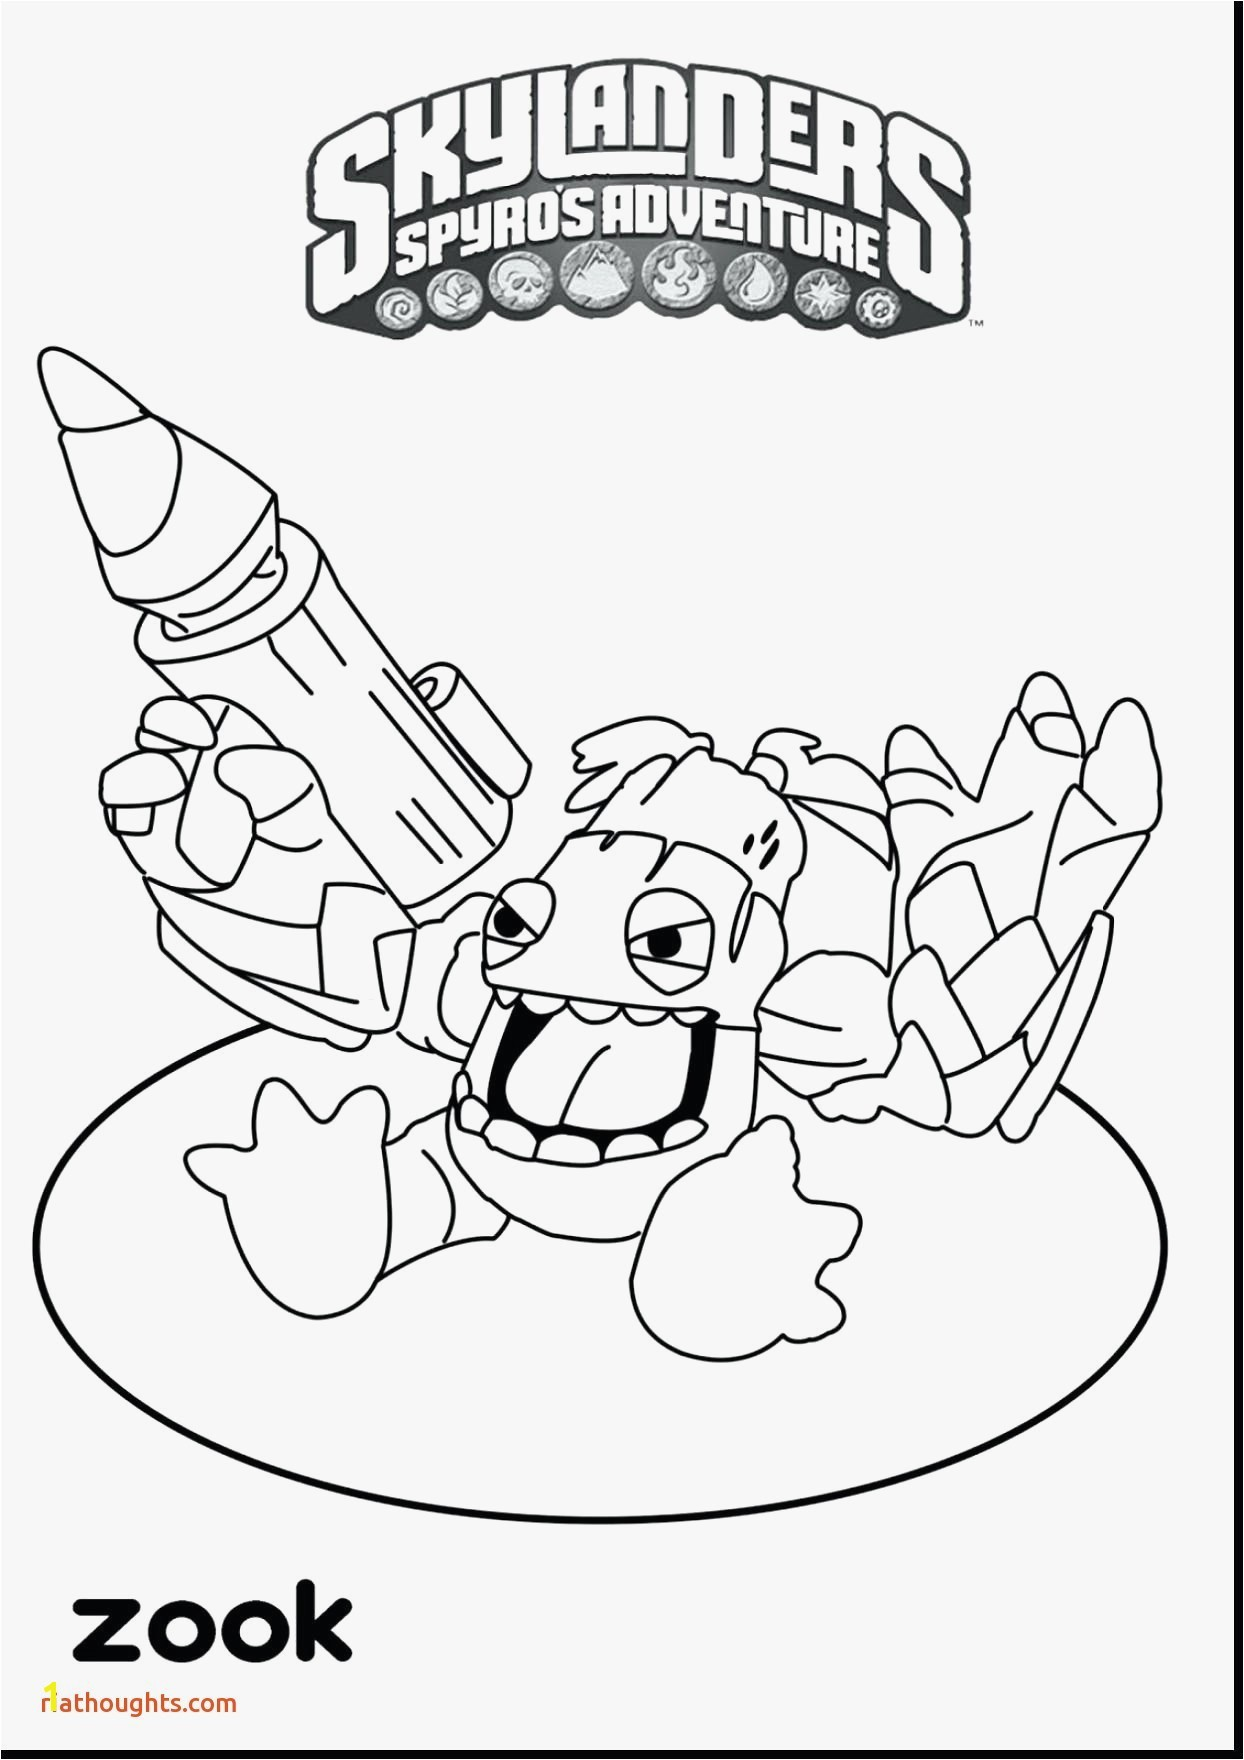 Cool Coloring Page Inspirational Witch Coloring Pages New Crayola Pages 0d Coloring Page